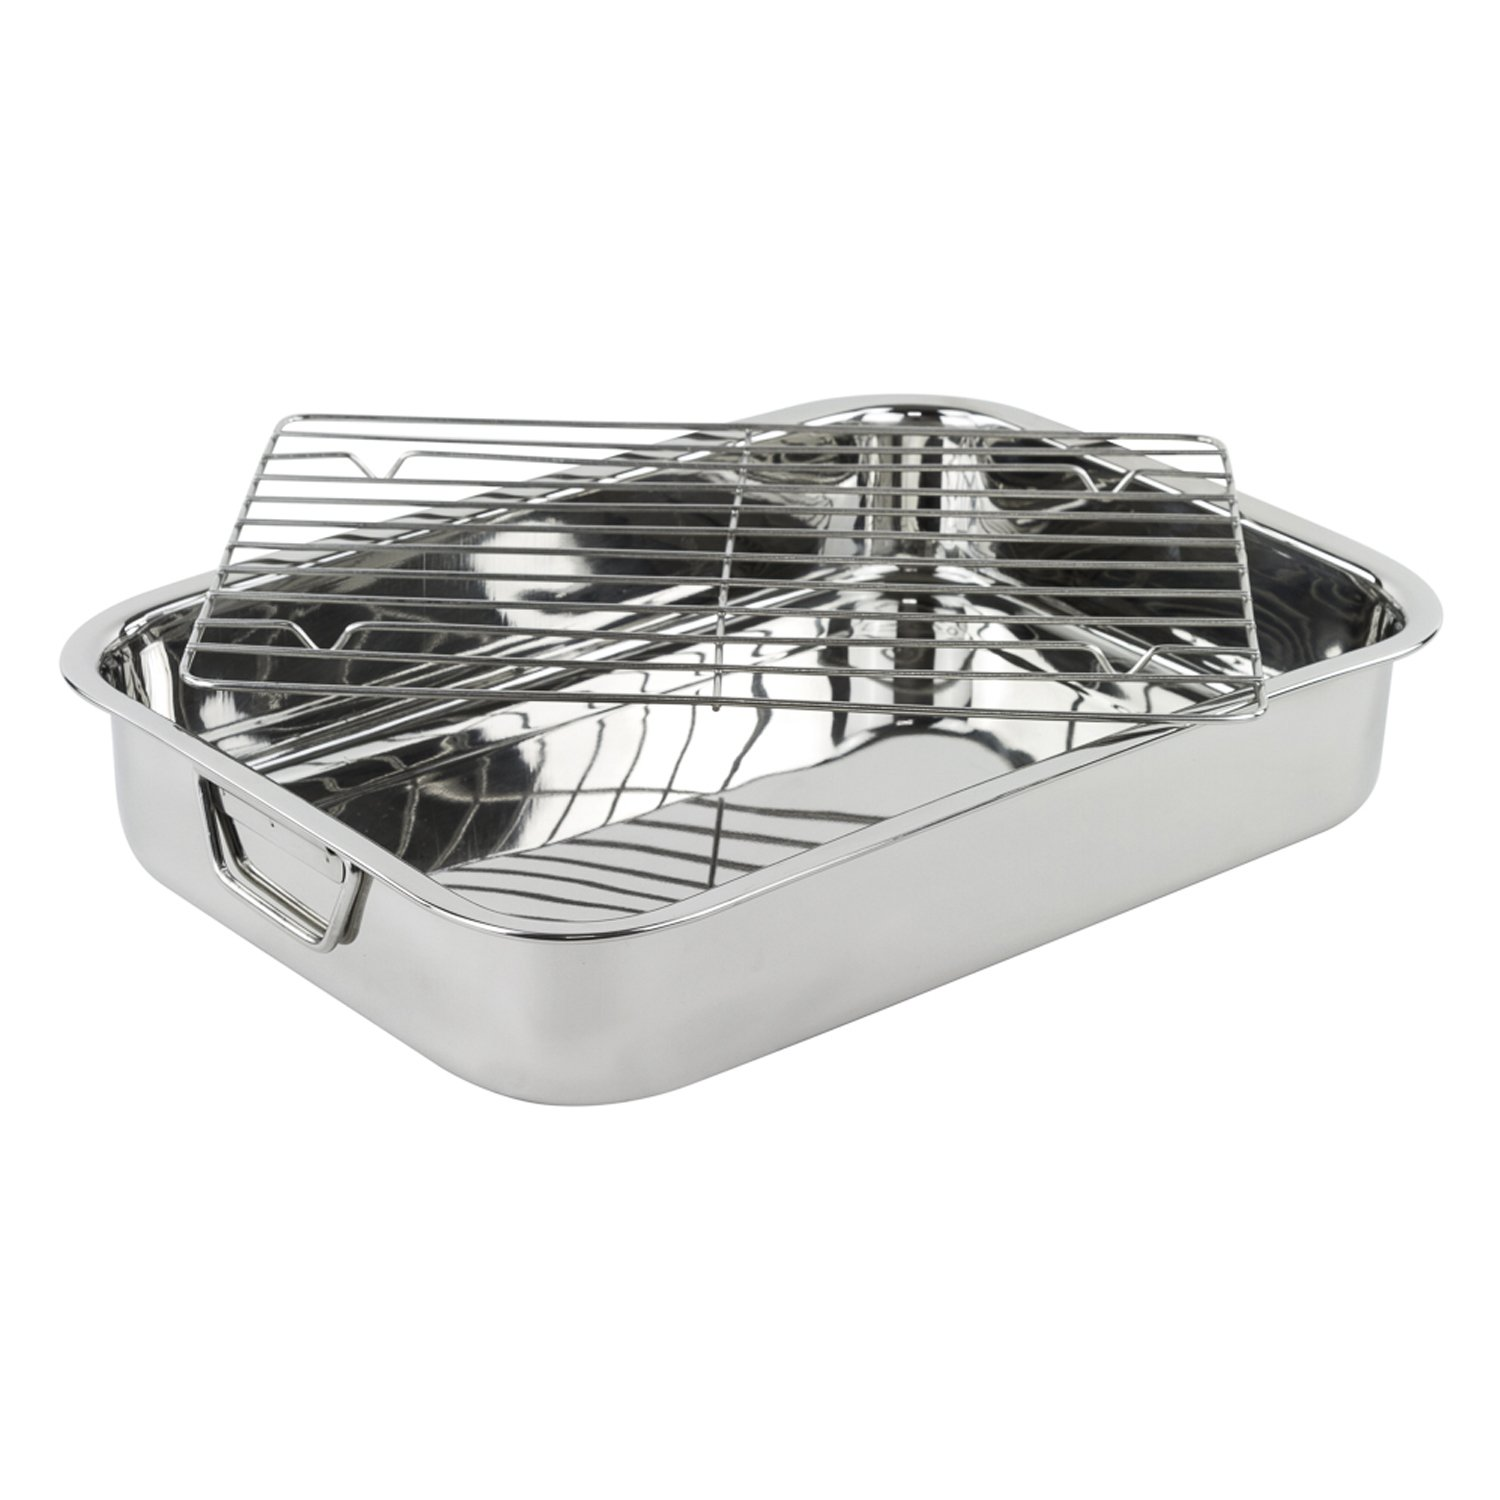 Stainless Steel Heavy Duty 16 Lasagna/Roasting Pan with Rack Imperial Home MW1418